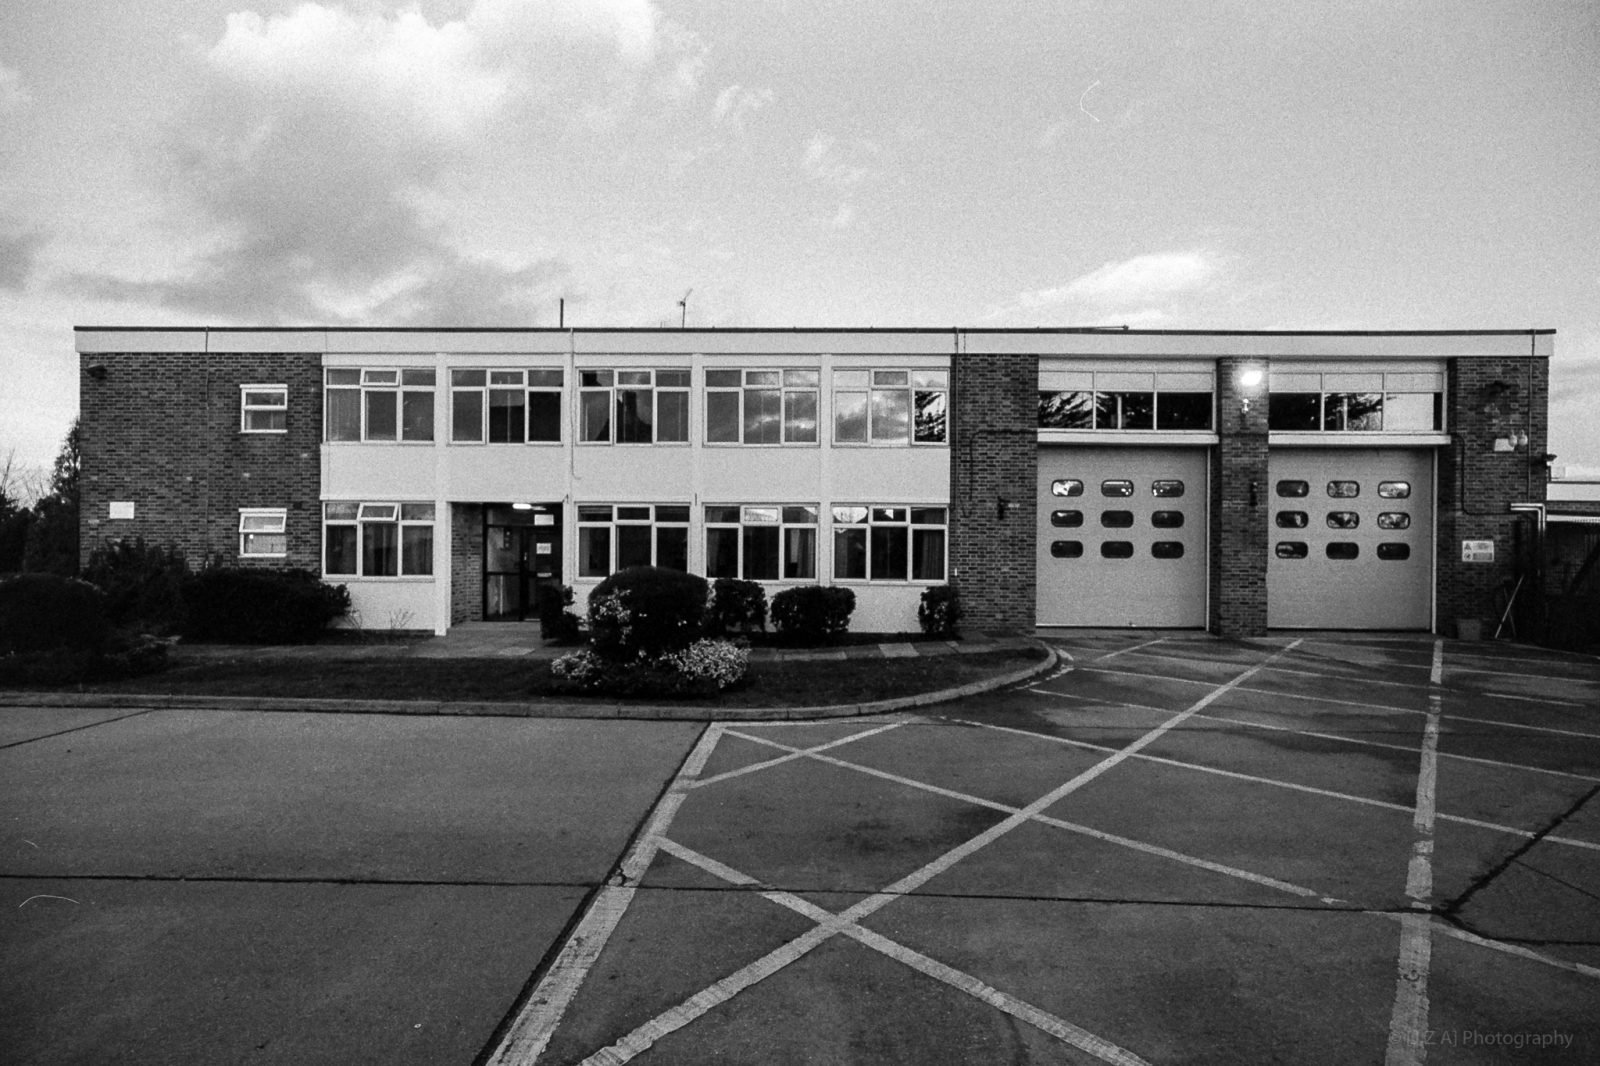 Wennington Fire Station